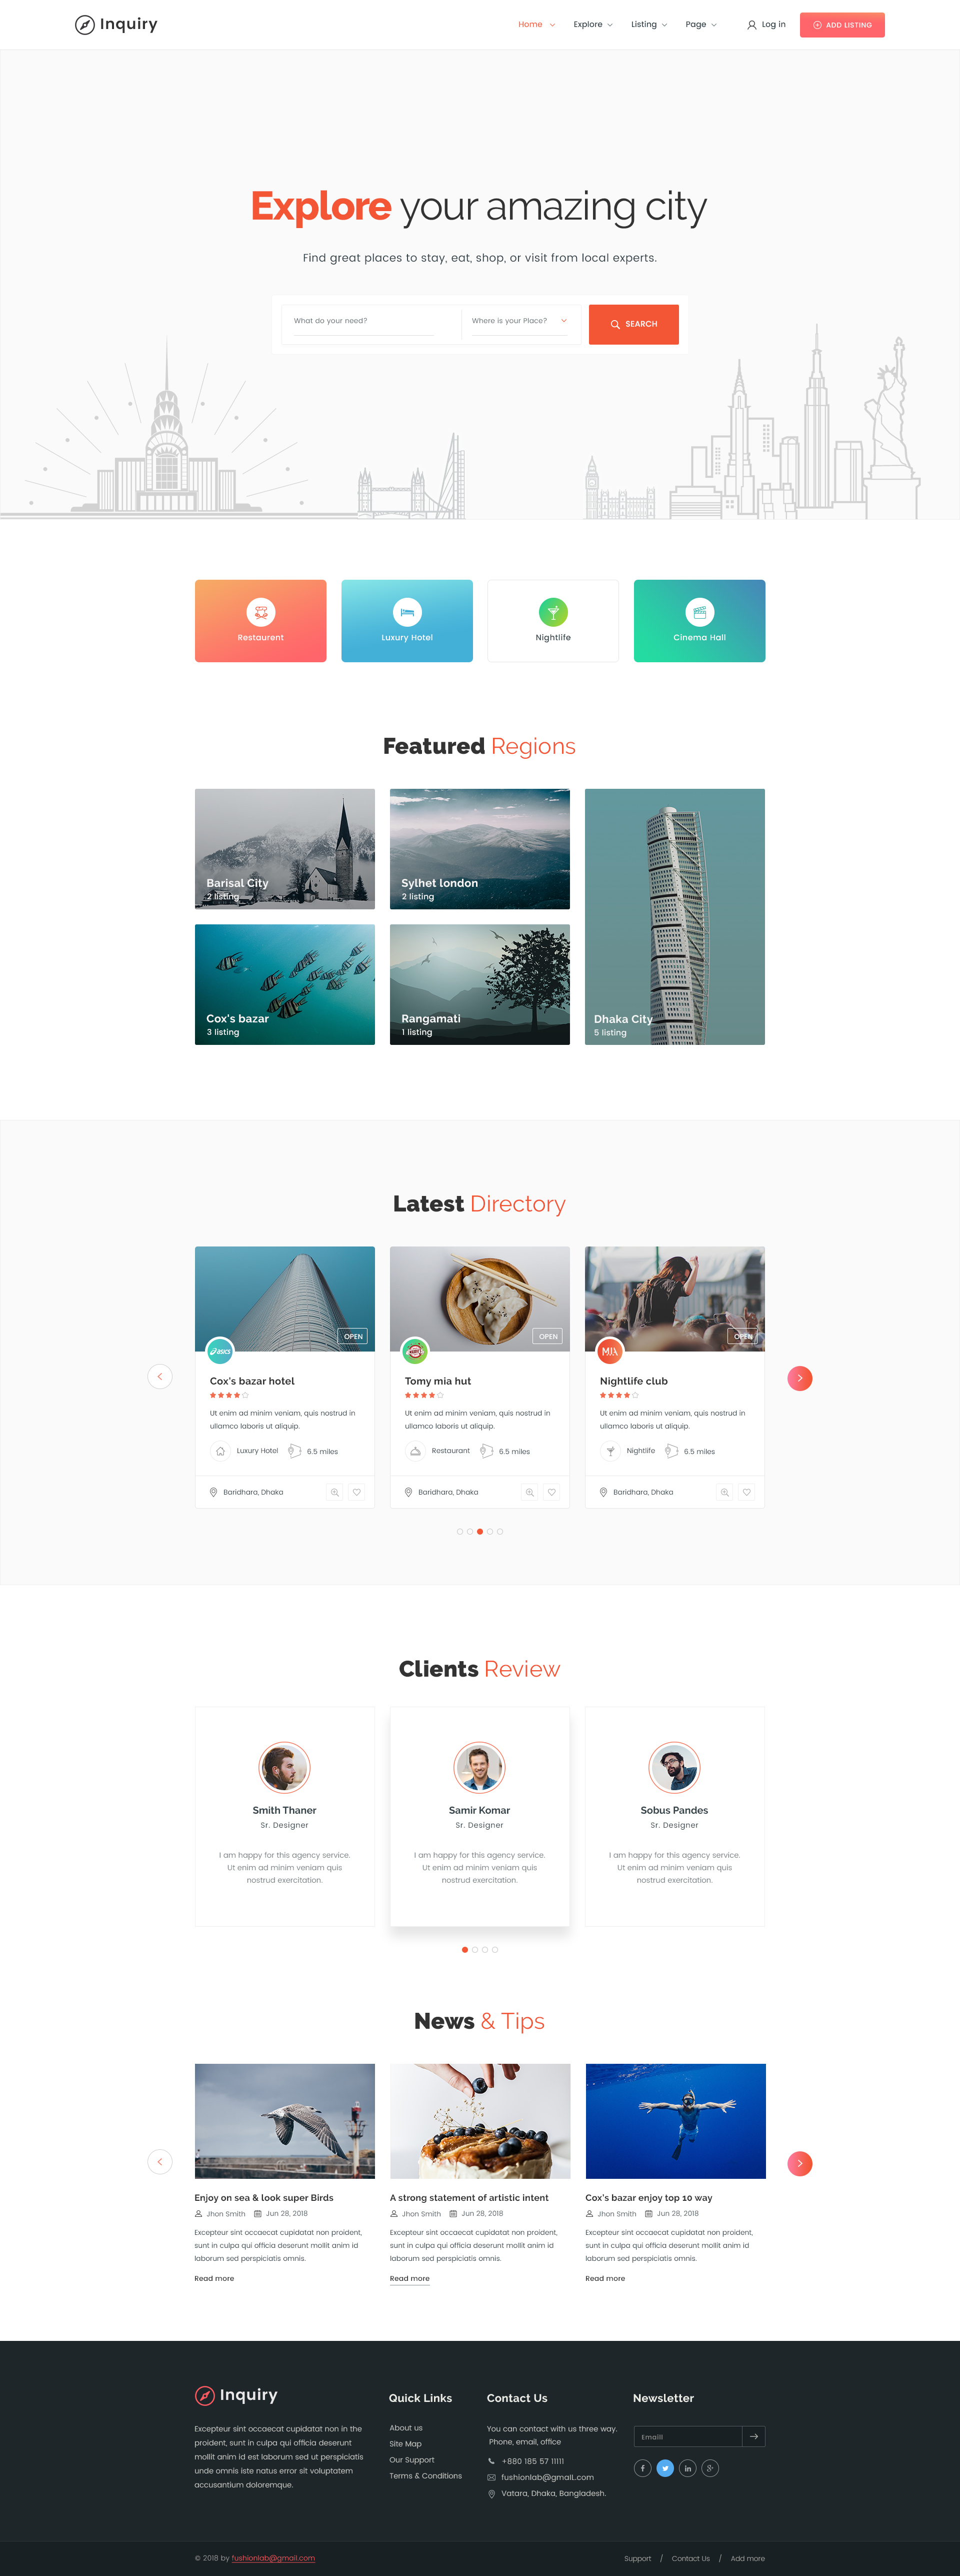 enquiry letter format%0A Inquiry Directory Listing Template By FusionnLab ThemeForest    Home